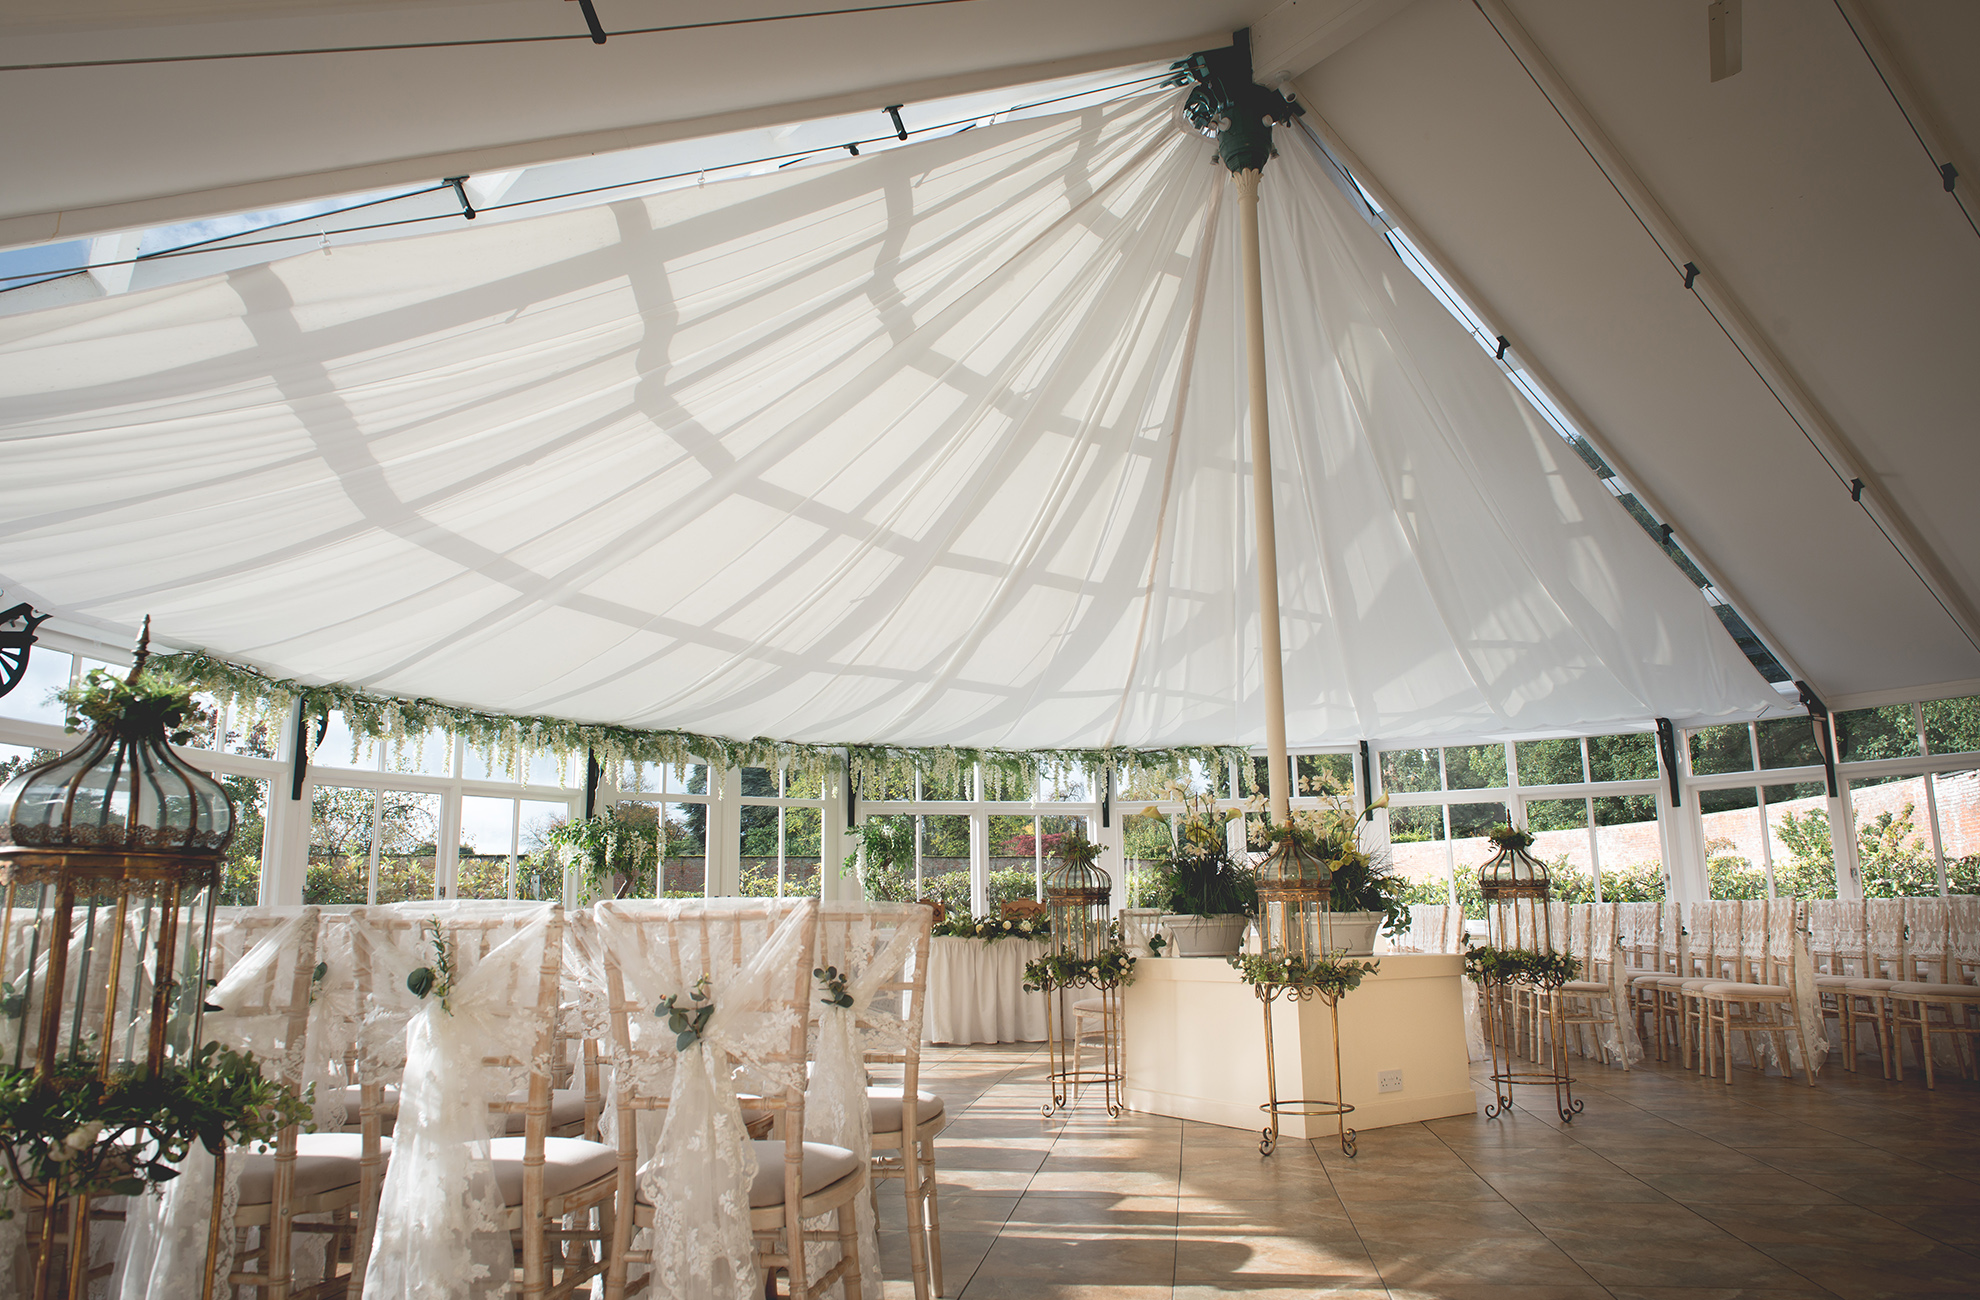 The glasshouse at Combermere Abbey wedding venue in Cheshire is set up for a beautiful wedding ceremony